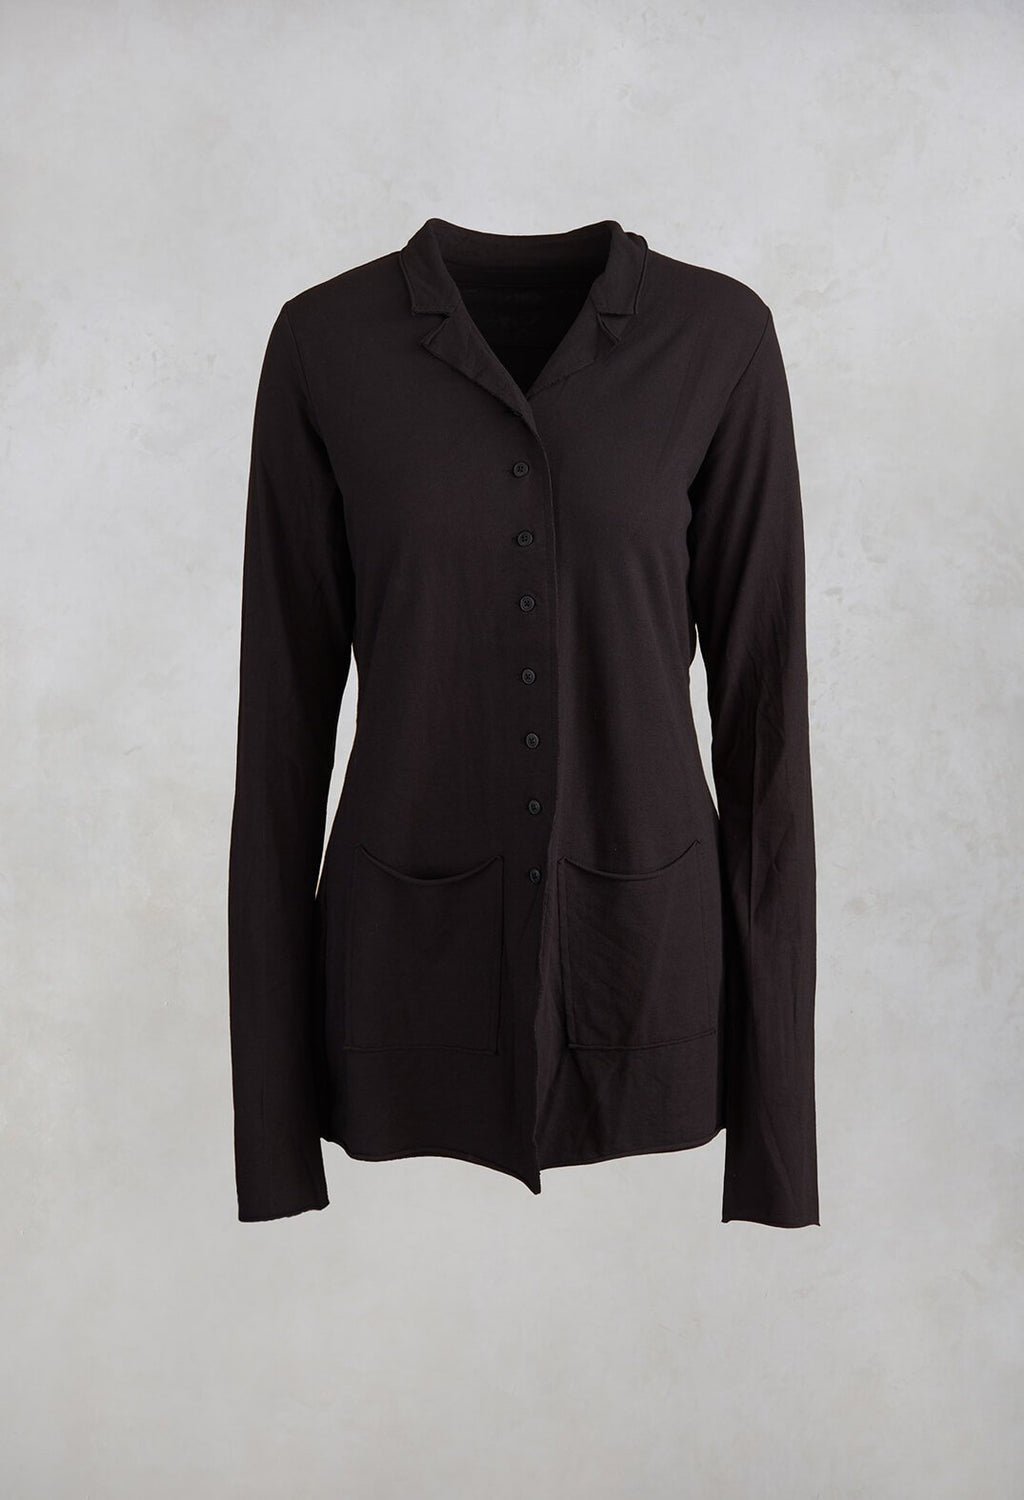 Relaxed Jacket in Black